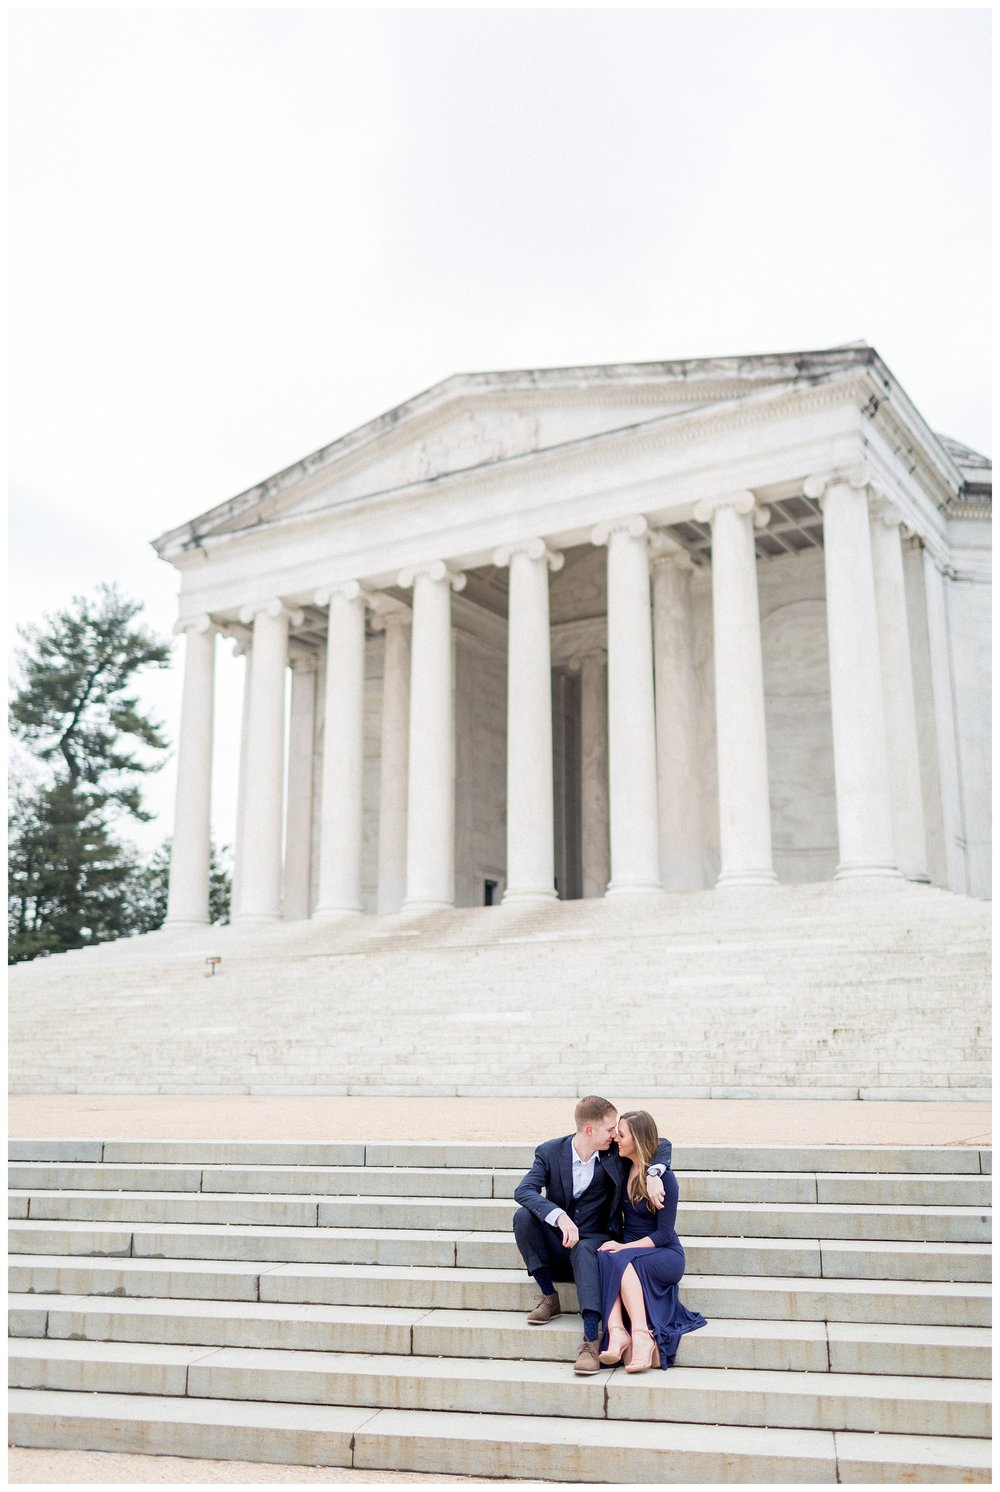 Washingon DC Engagement Photos | Jefferson Memorial Engagement | Kir Tuben_0003.jpg